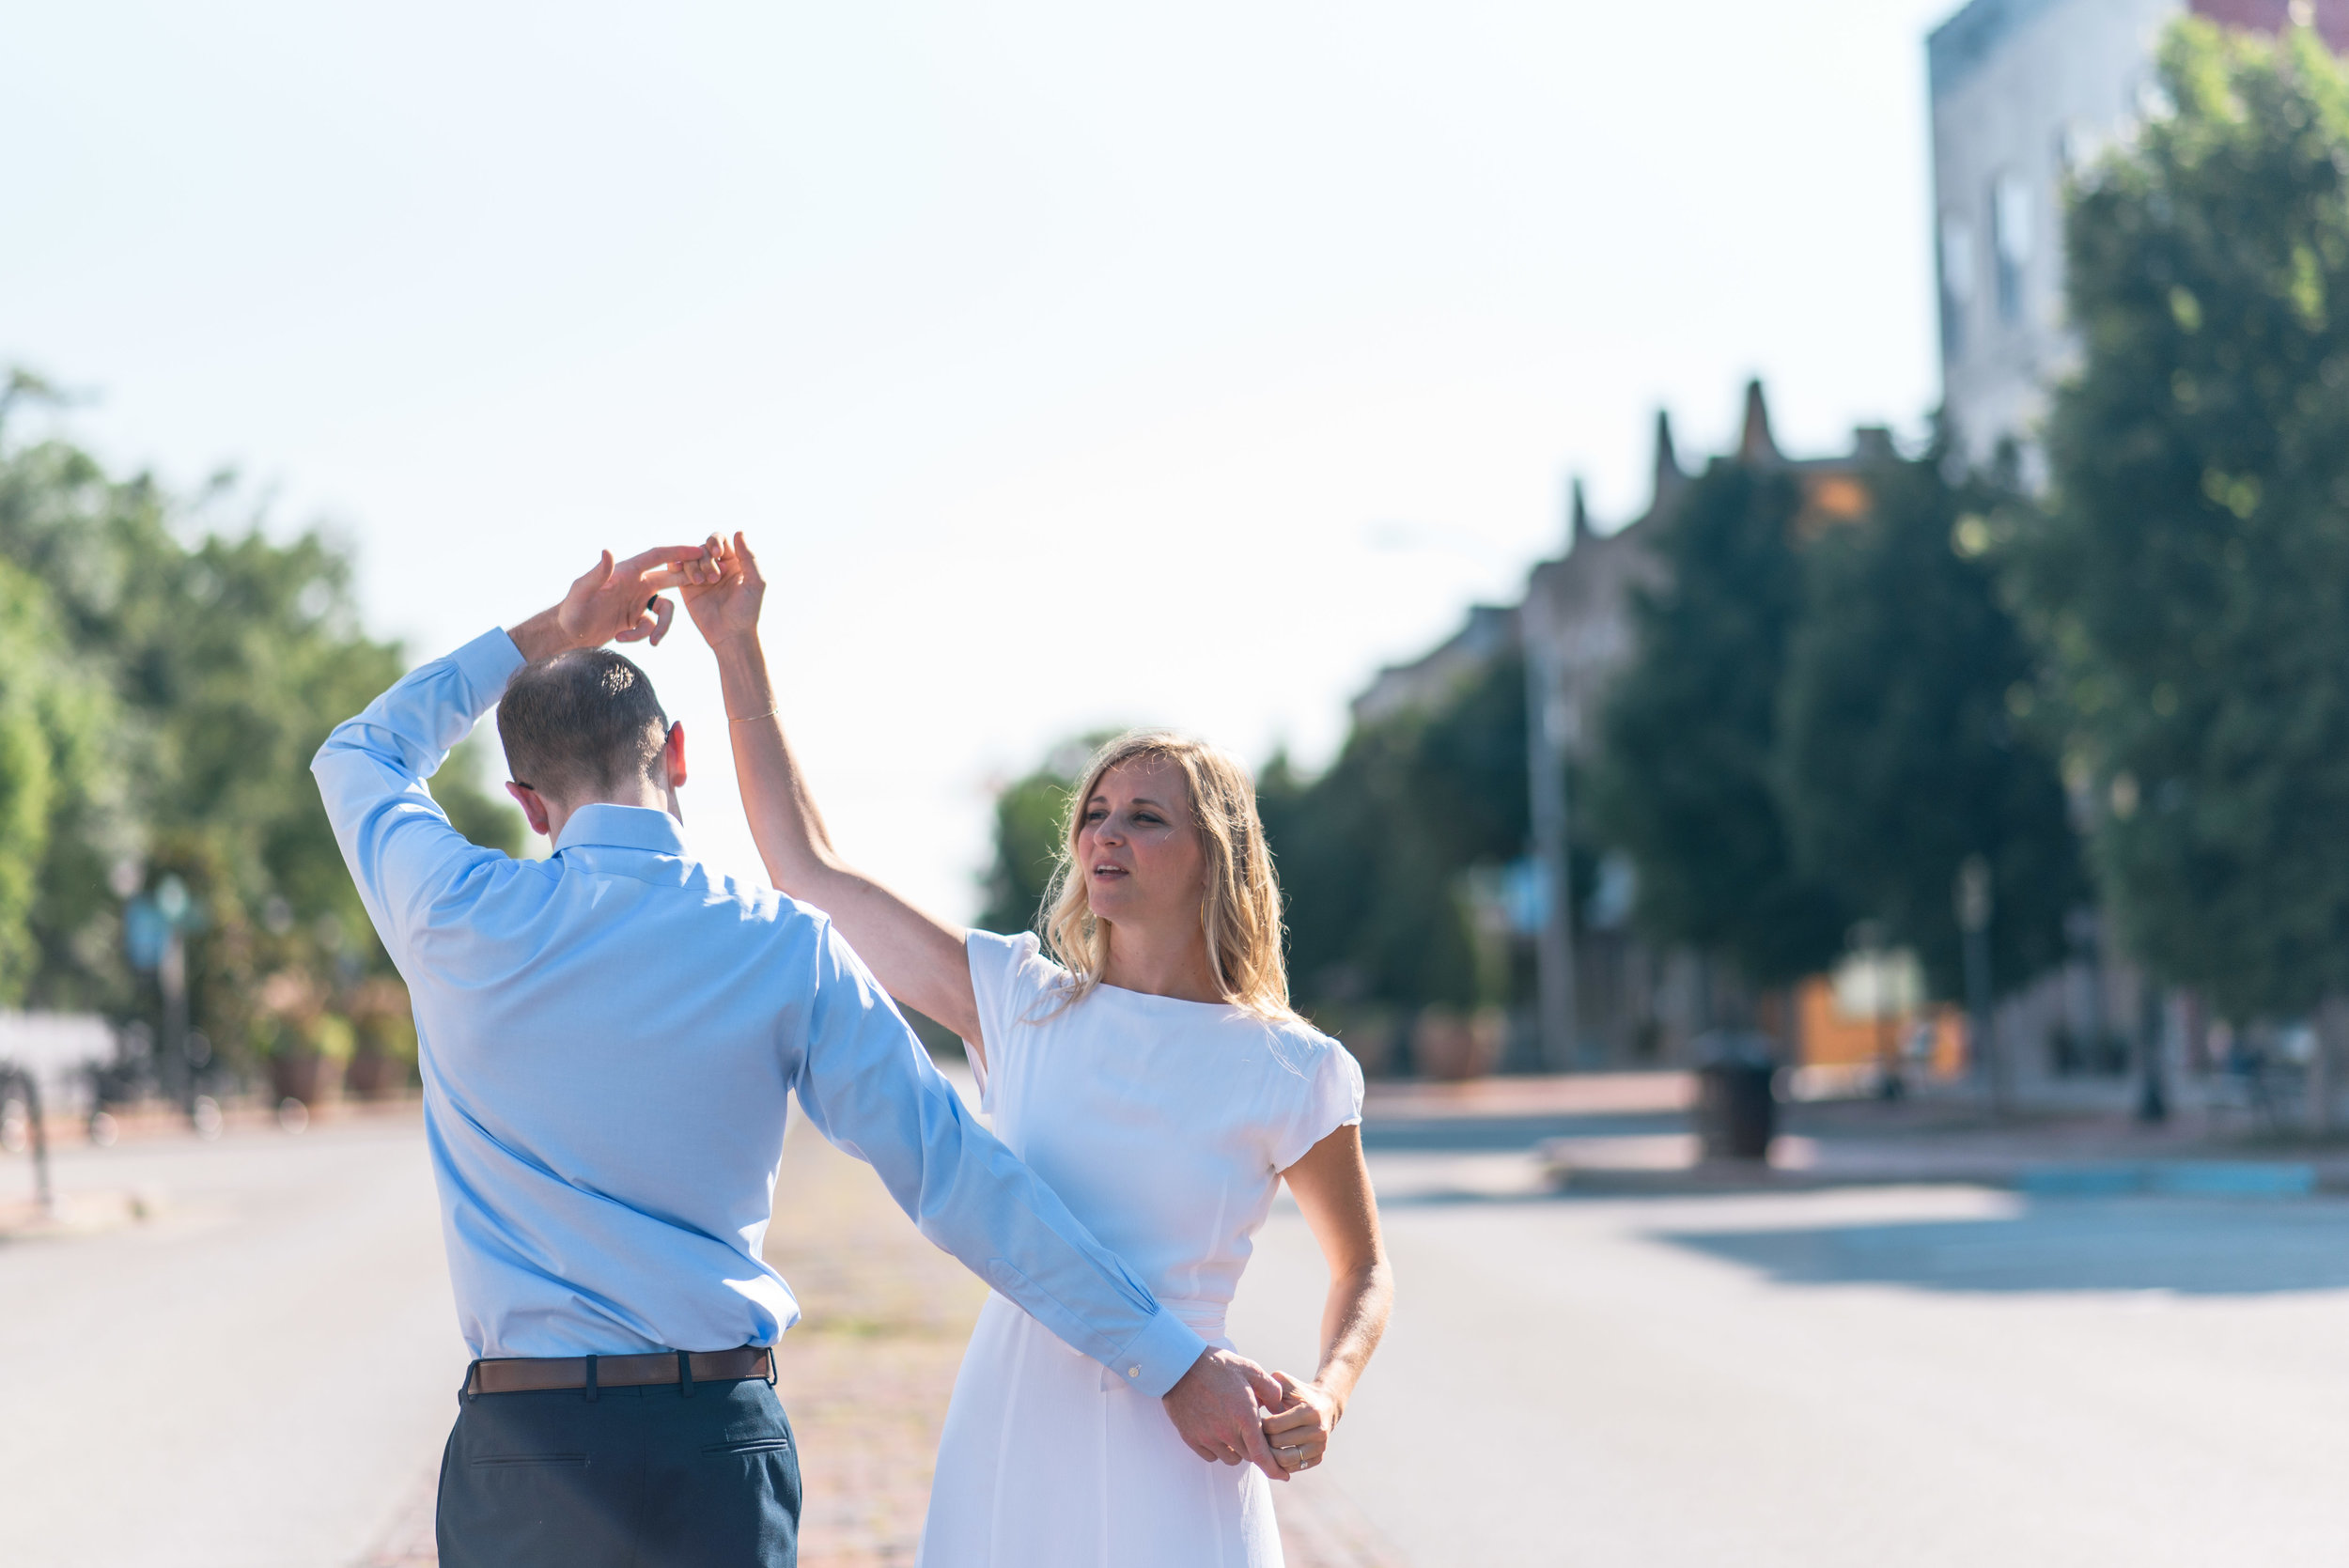 taryn-and-jackson-engagement-save-the-date (28 of 219).jpg